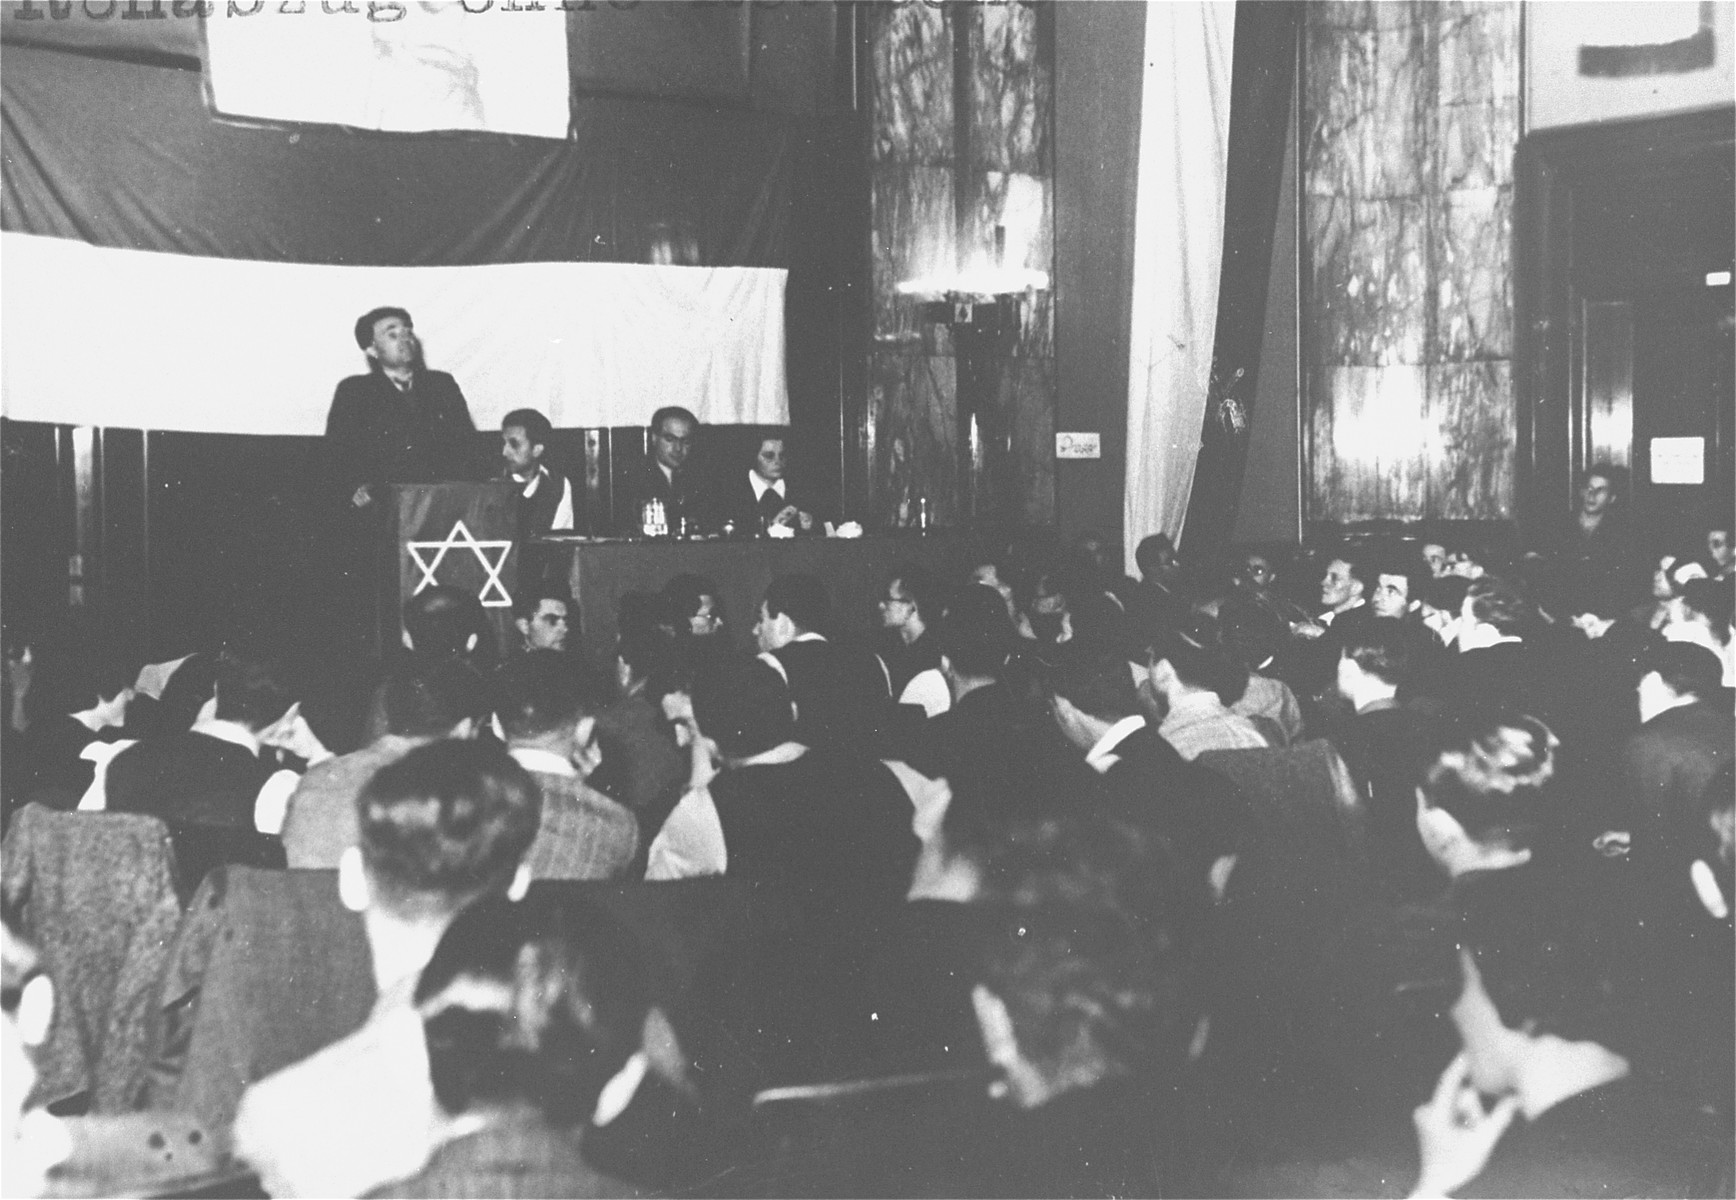 A meeting of German Jews in a synagogue in Berlin.